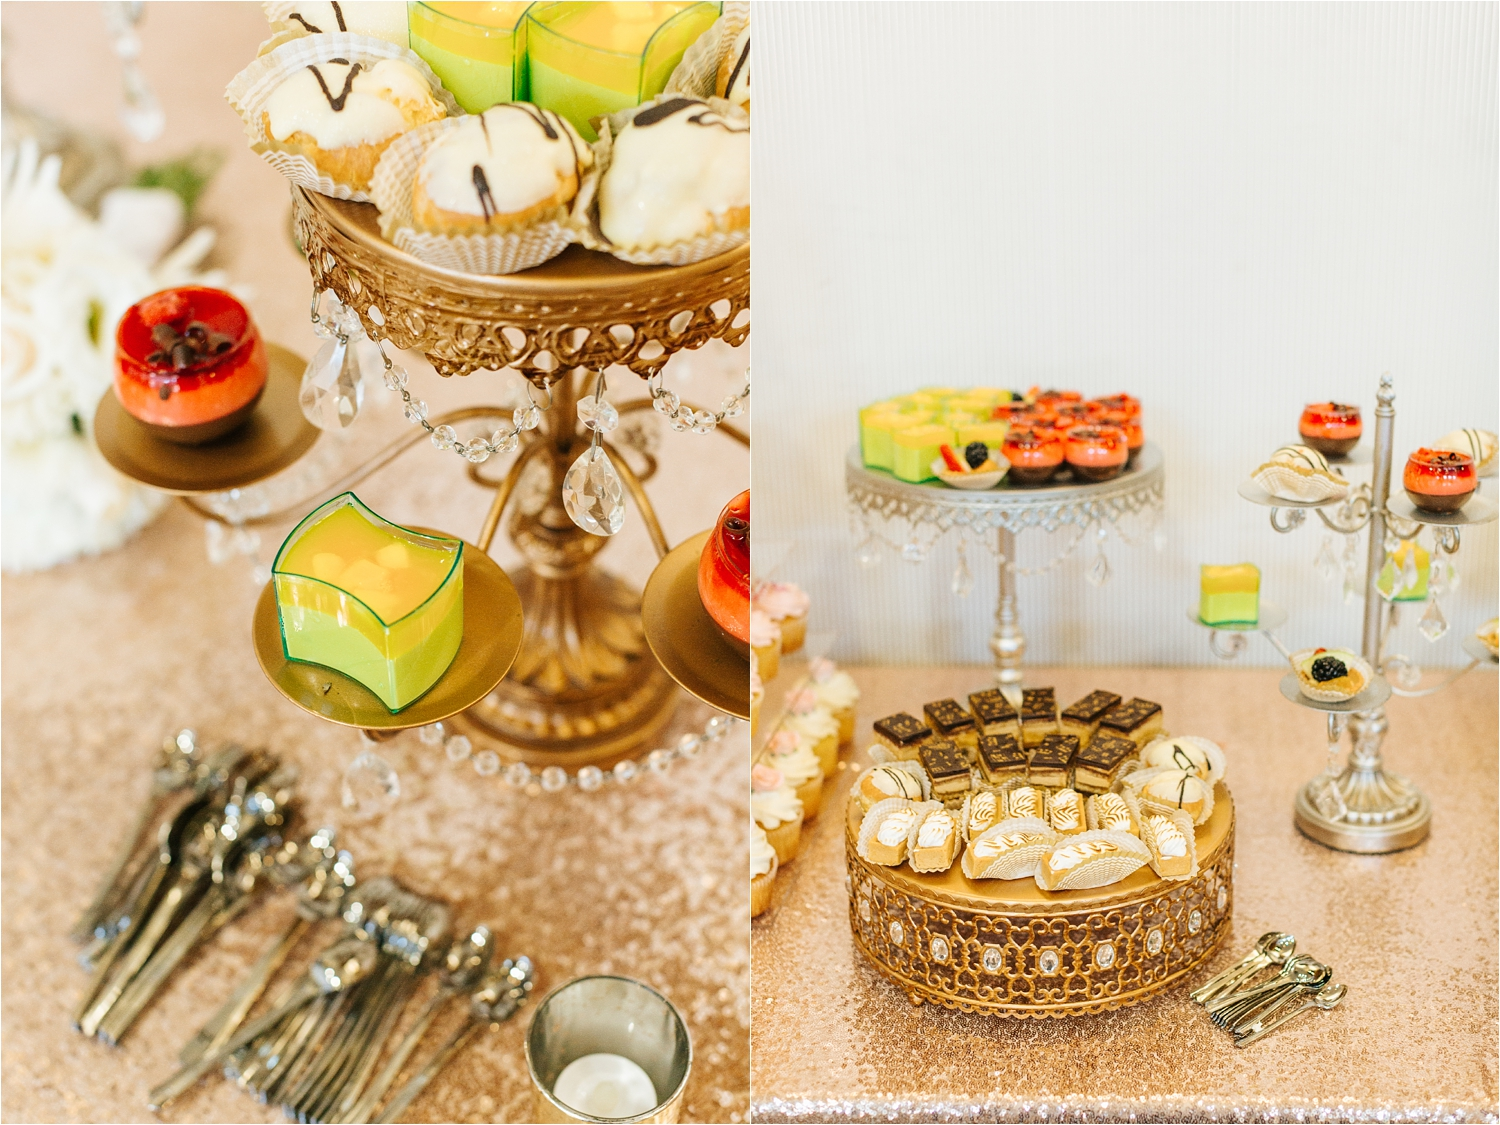 Wedding Reception Details - Desserts - https://brittneyhannonphotography.com